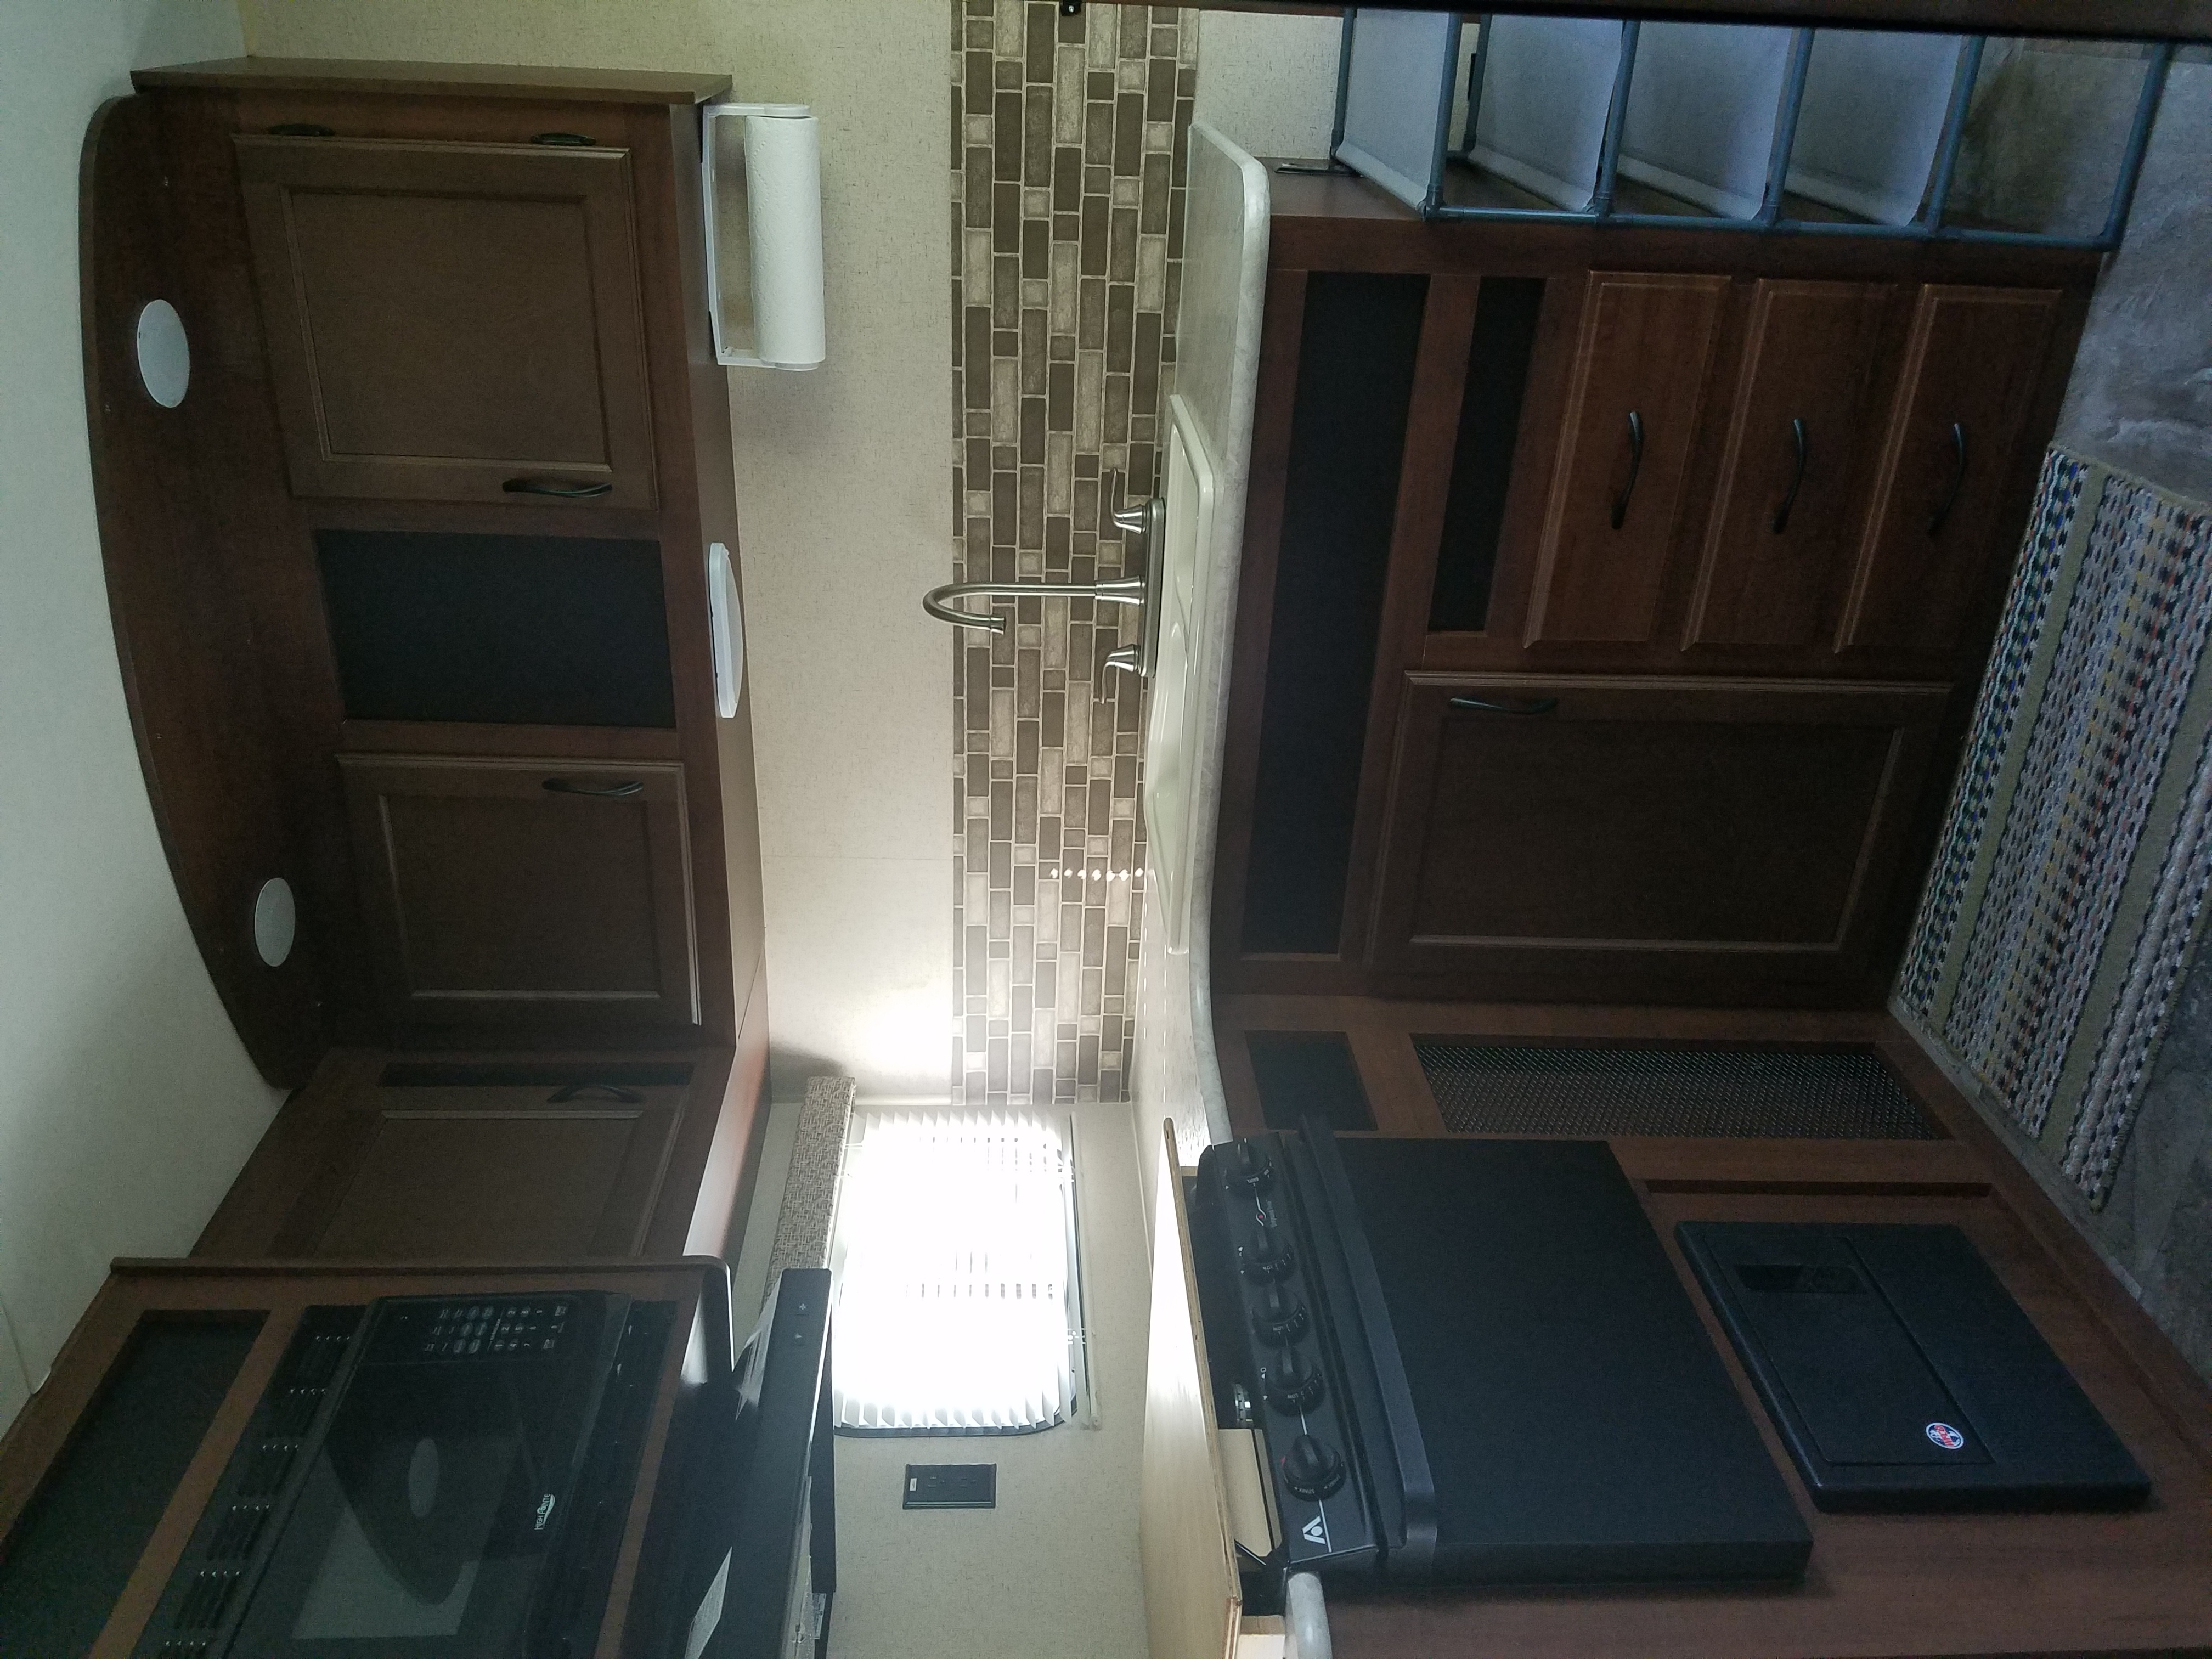 Kitchen is L shaped with Microwave, Oven and Stove.  Stove topper handmade allows extra counter space.. Jayco Jay Flight 2015